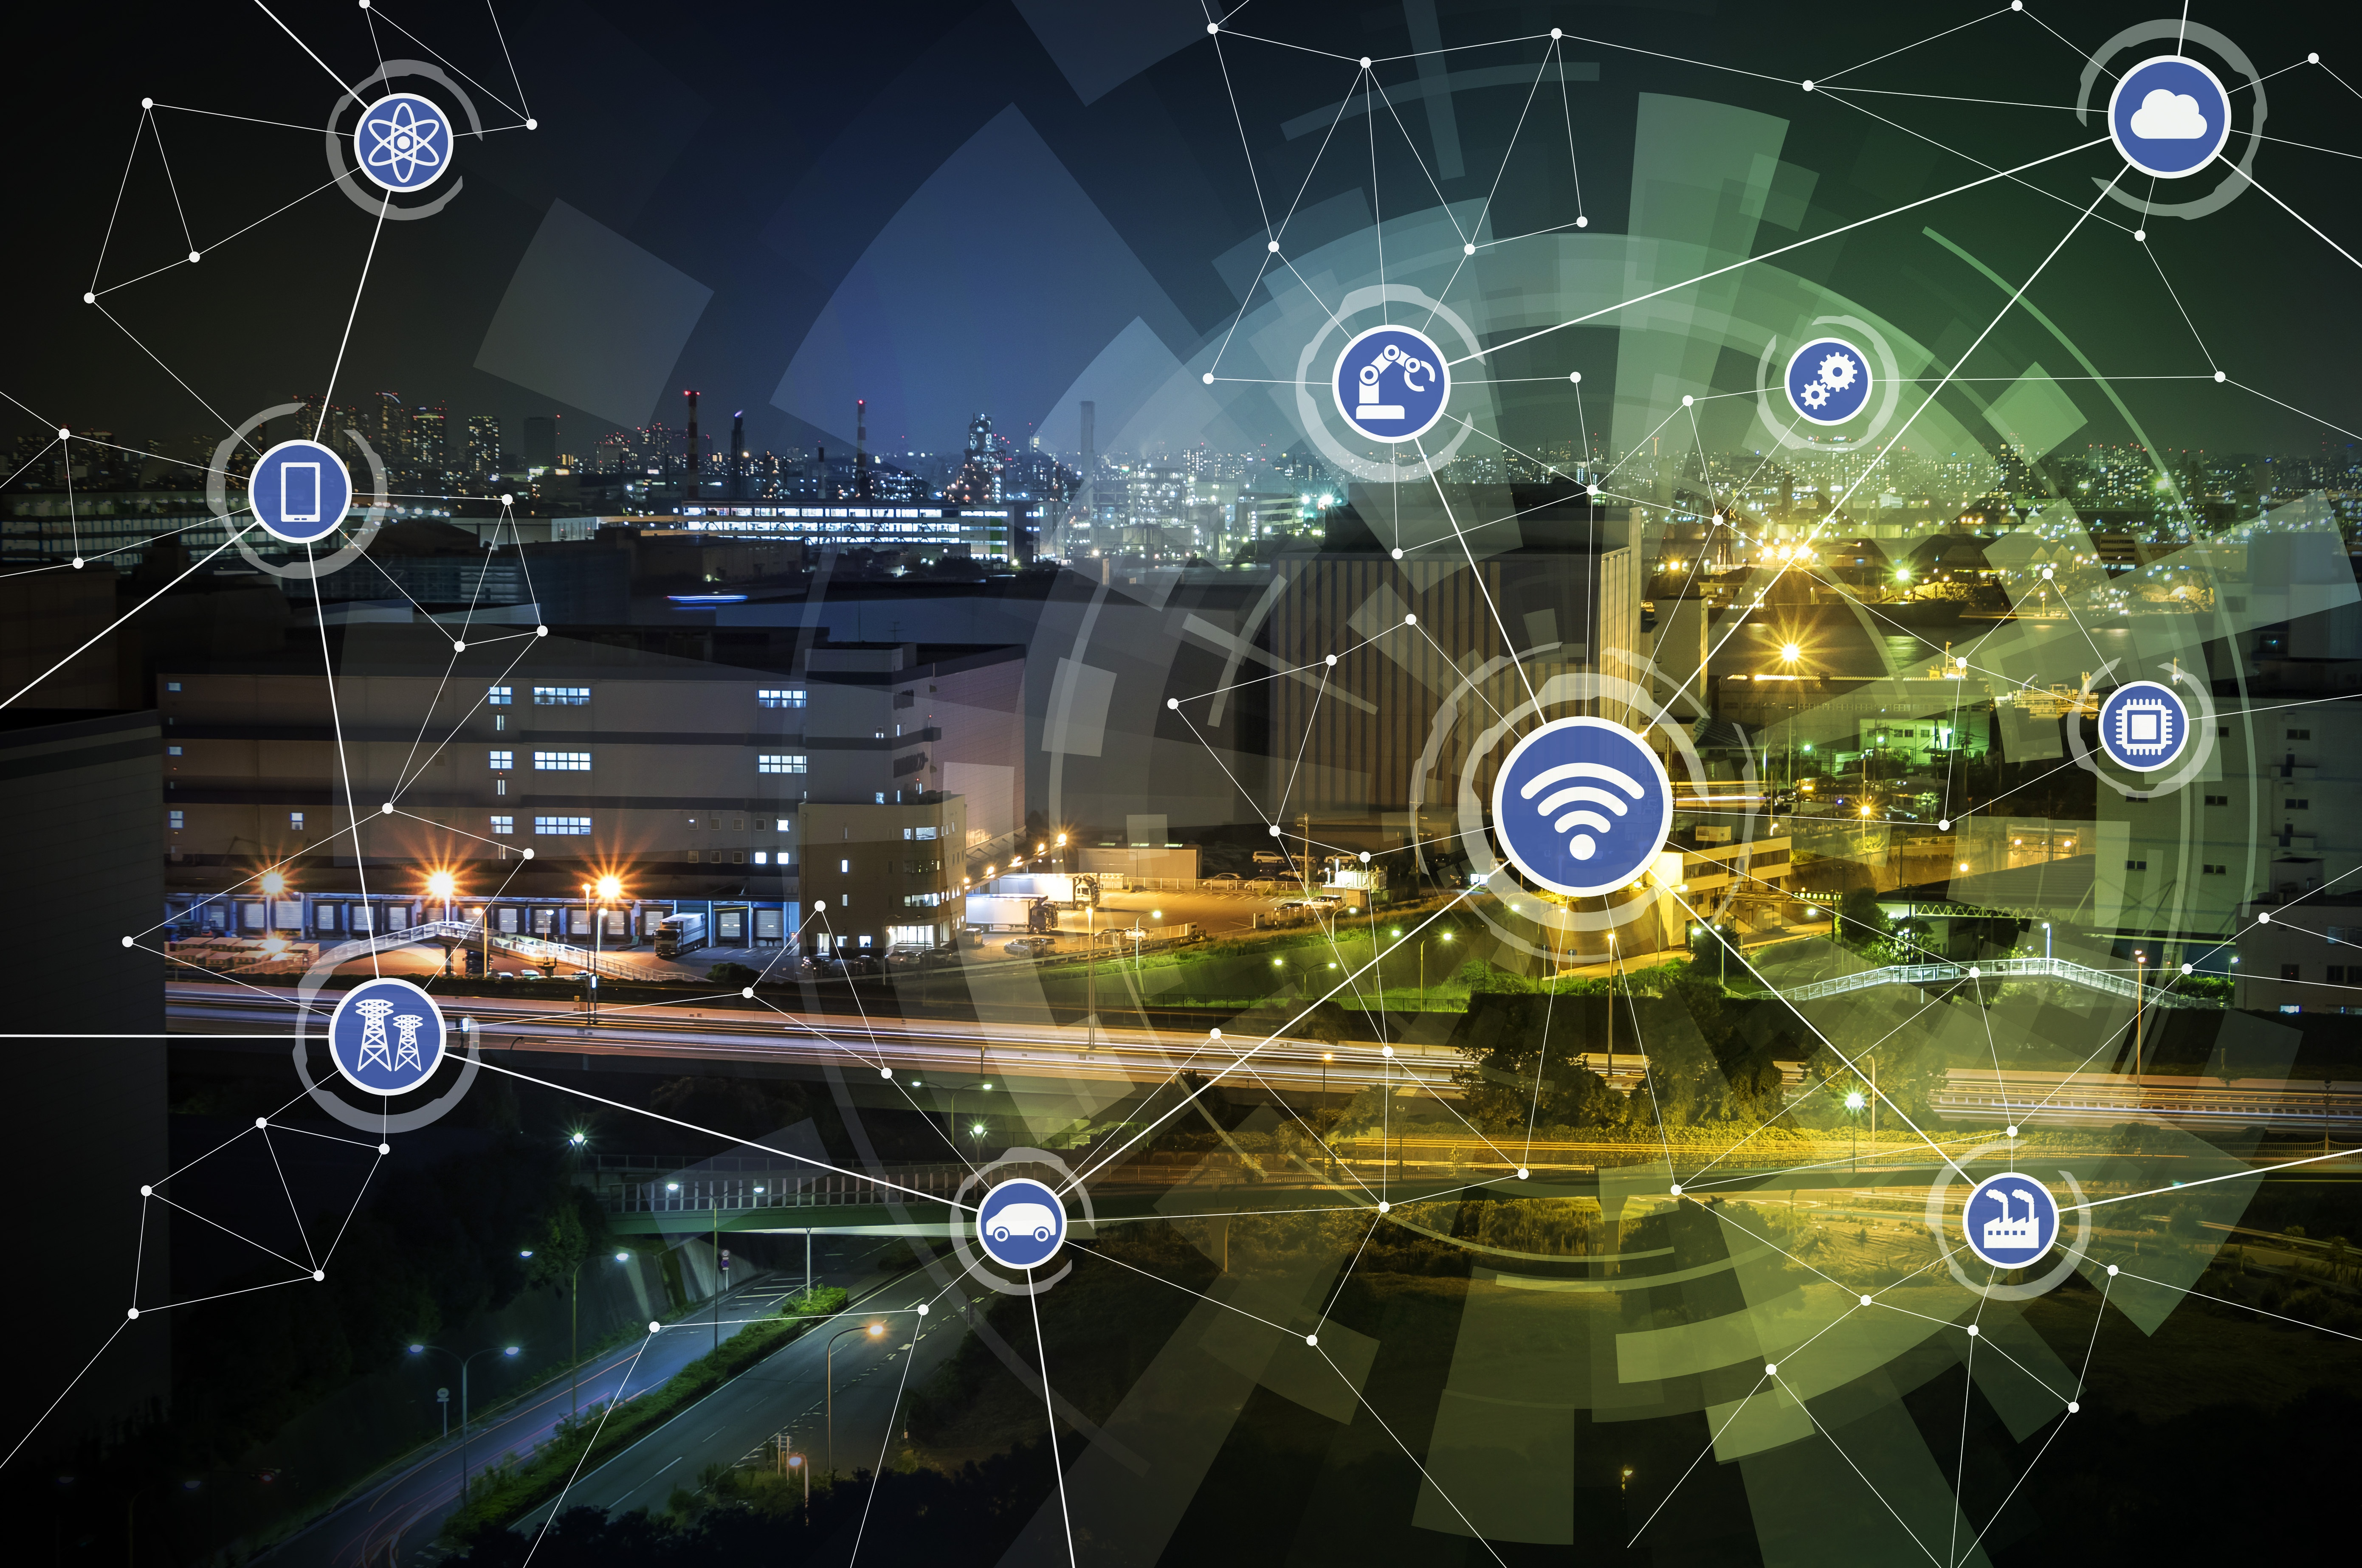 Key Drivers for Industrial Internet of Things solutions